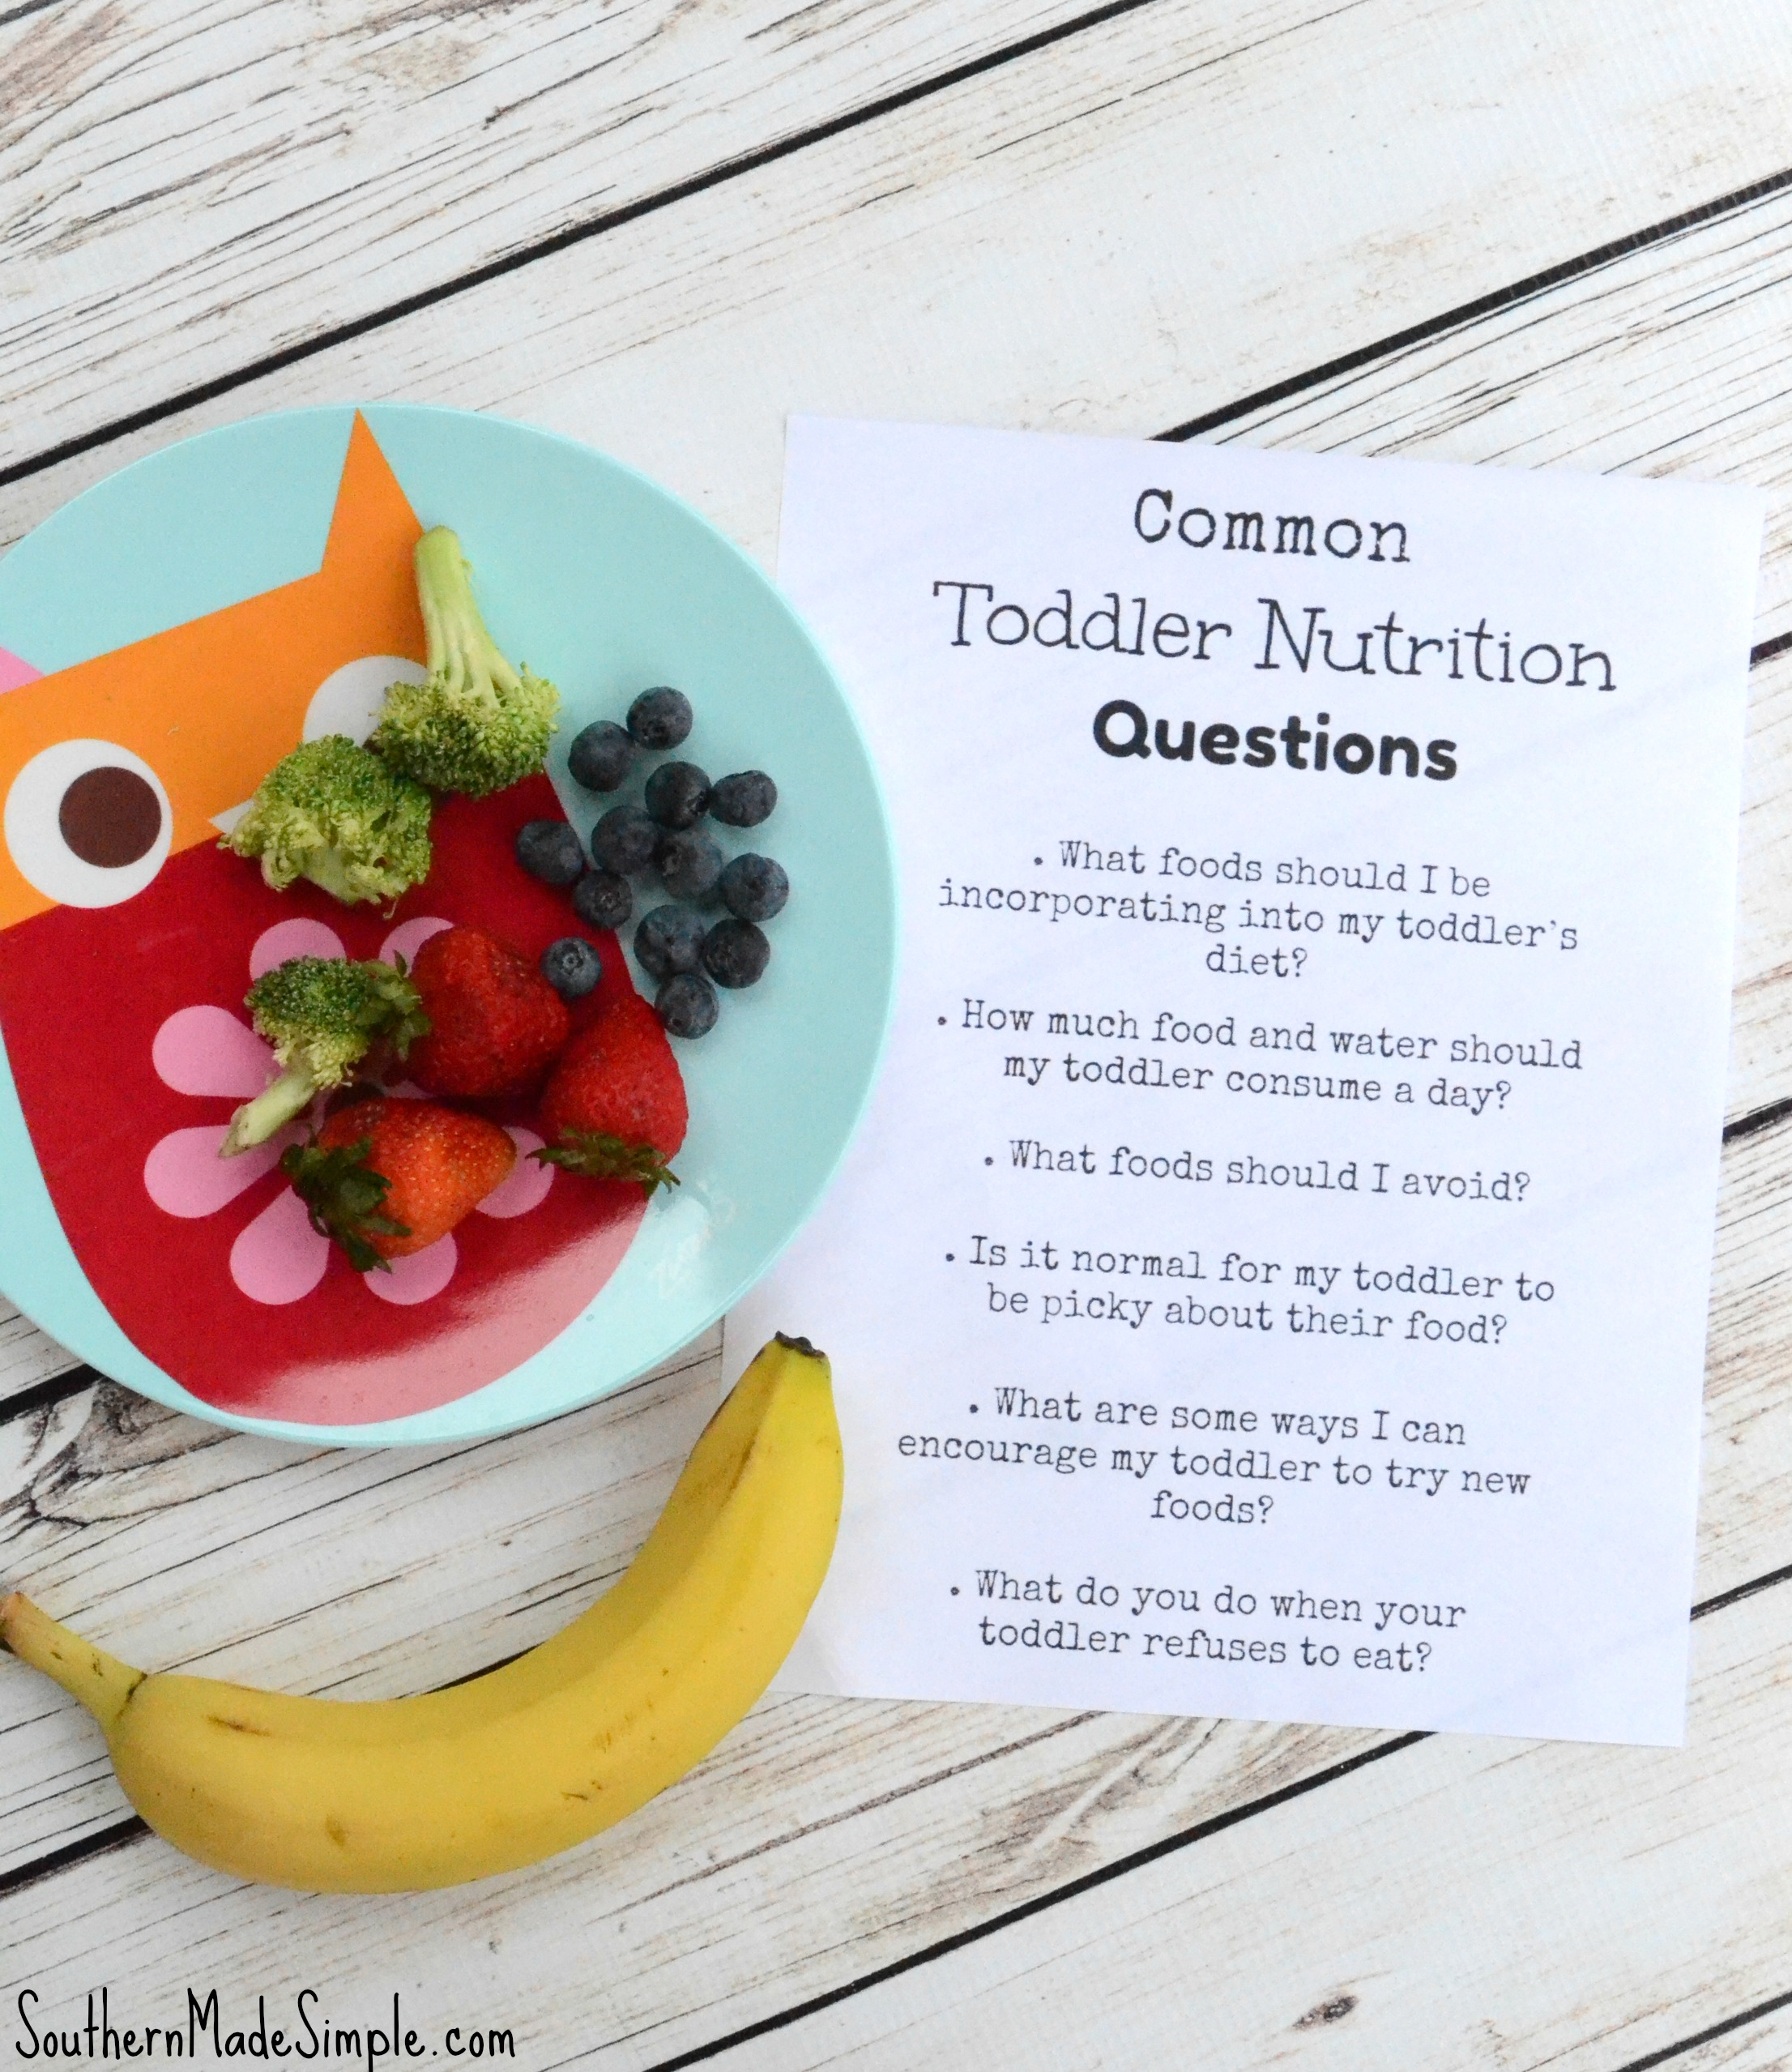 How to get my picky toddler to actually eat? Plus other common toddler nutrition questions answered